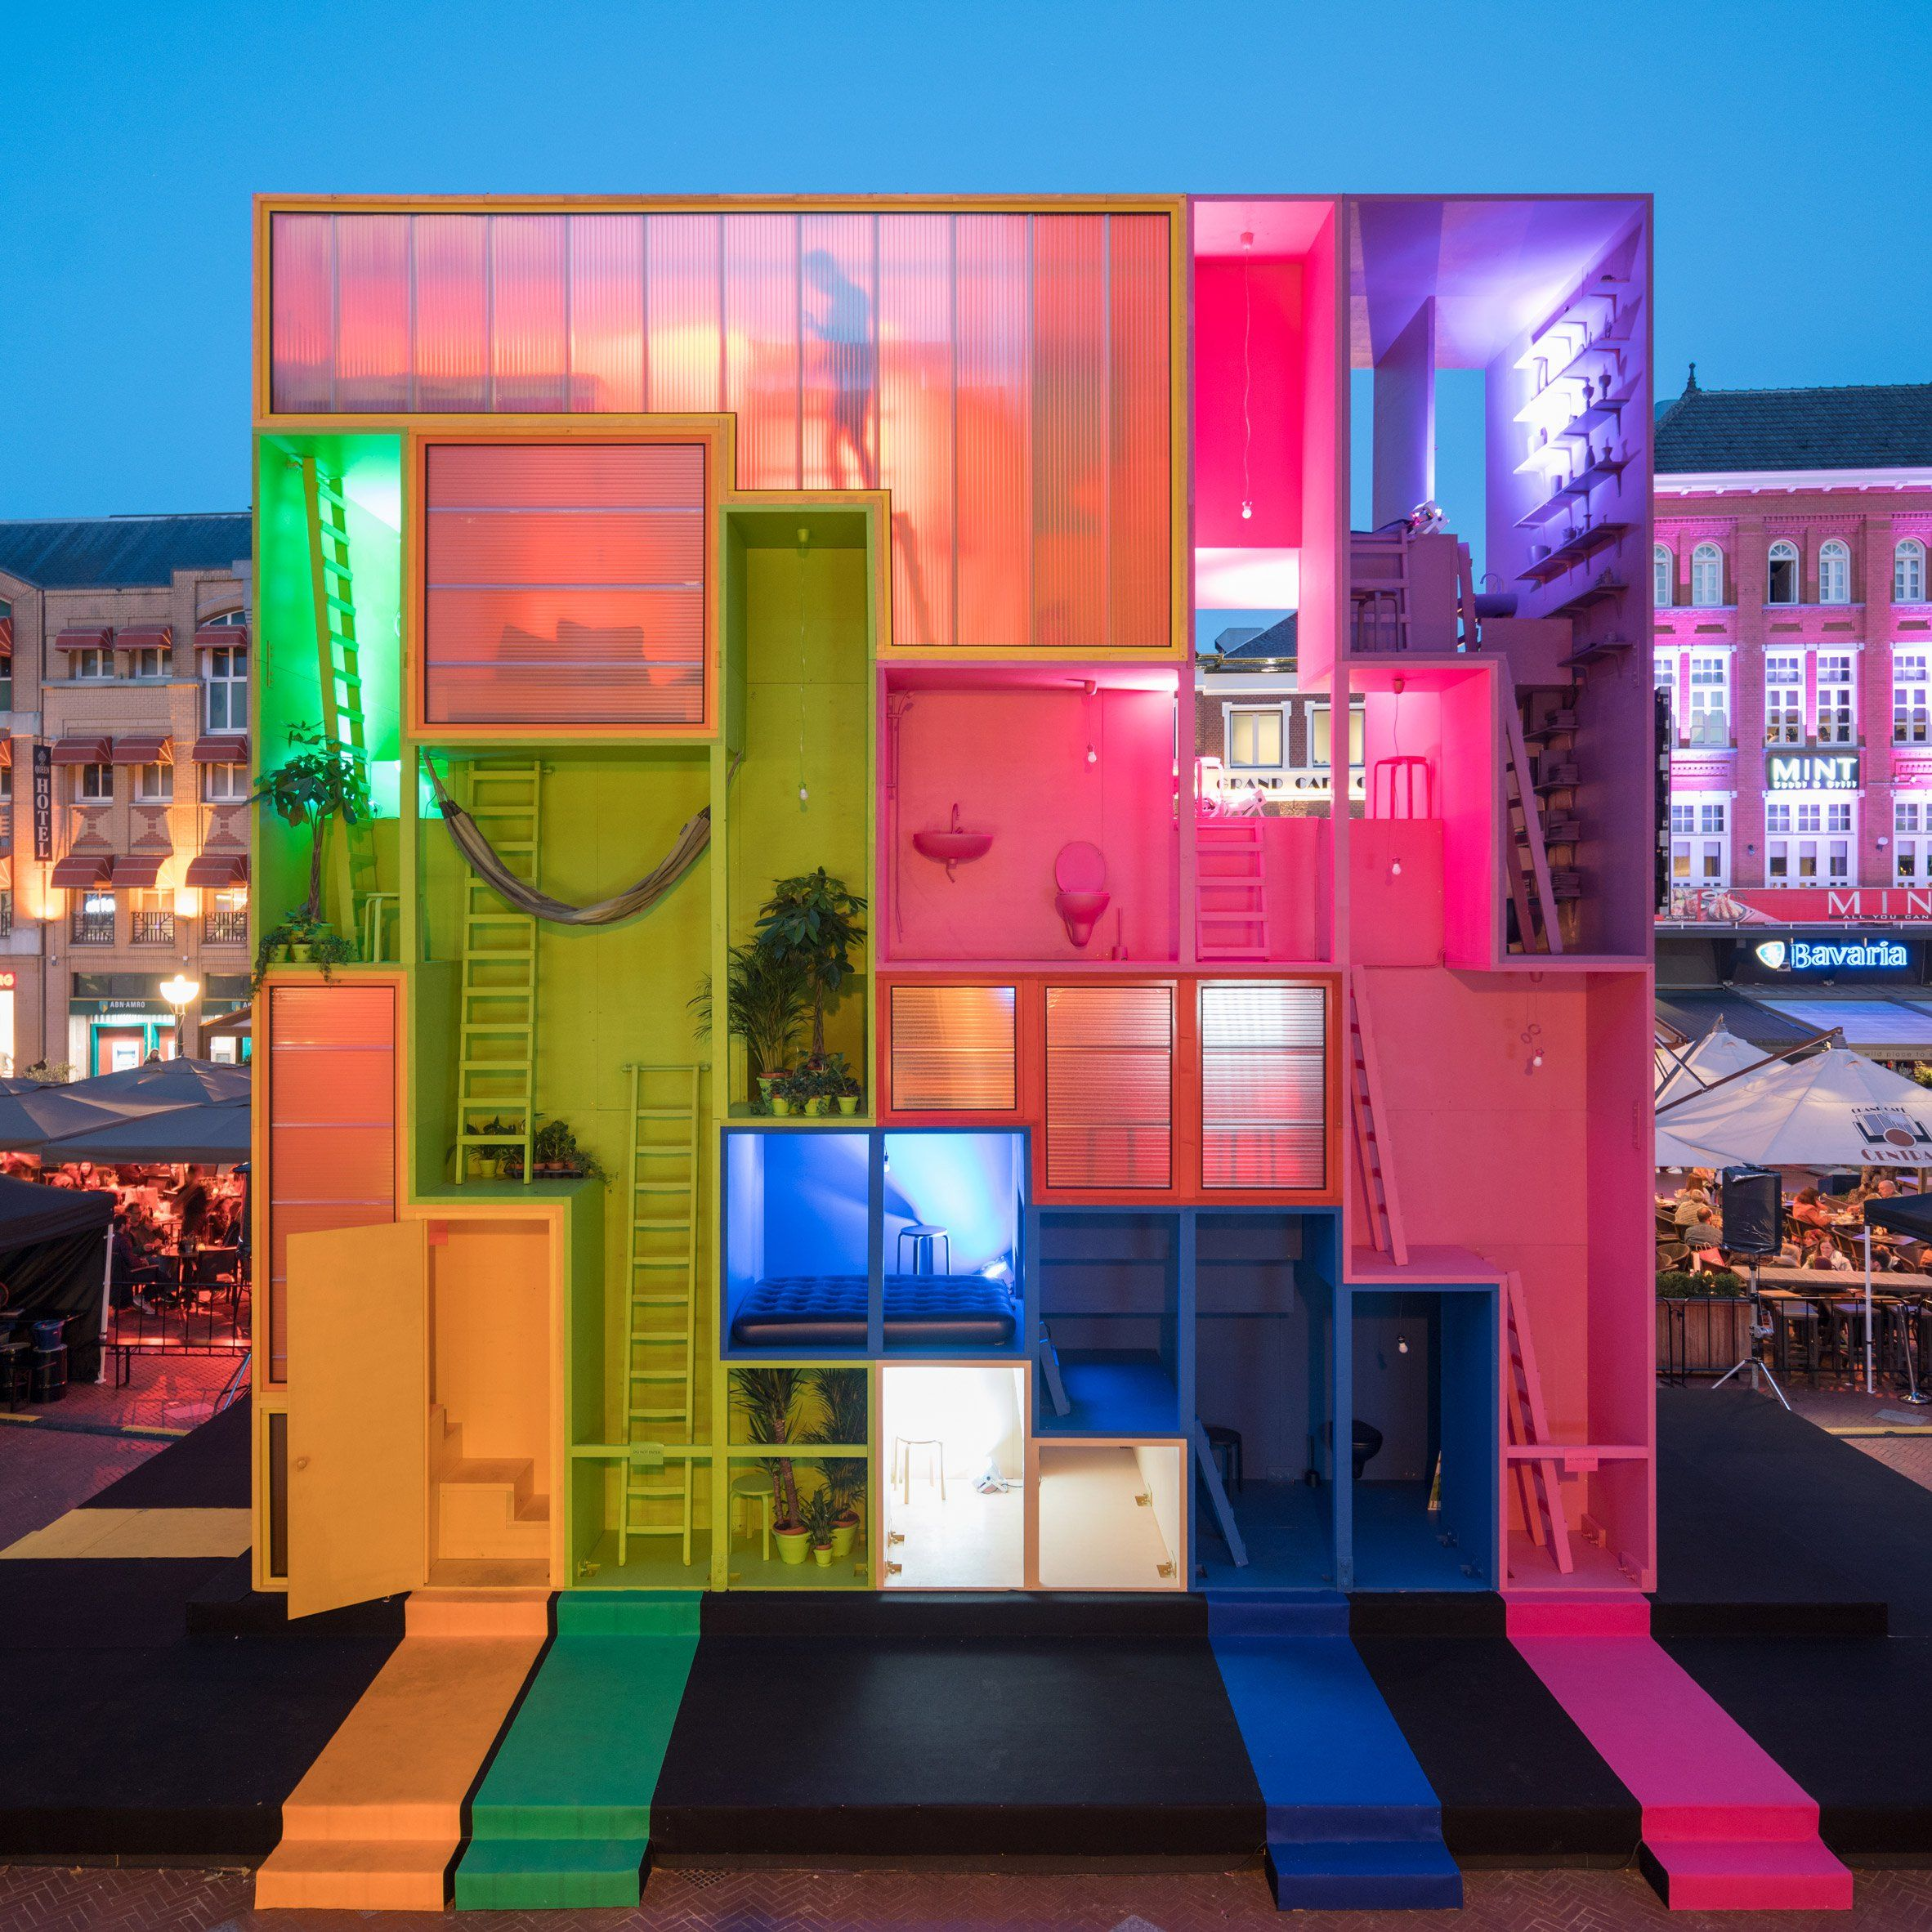 Dutch studio MVRDV has built a colourful, futuristic house, made up of nine rooms that can be moved into different configurations